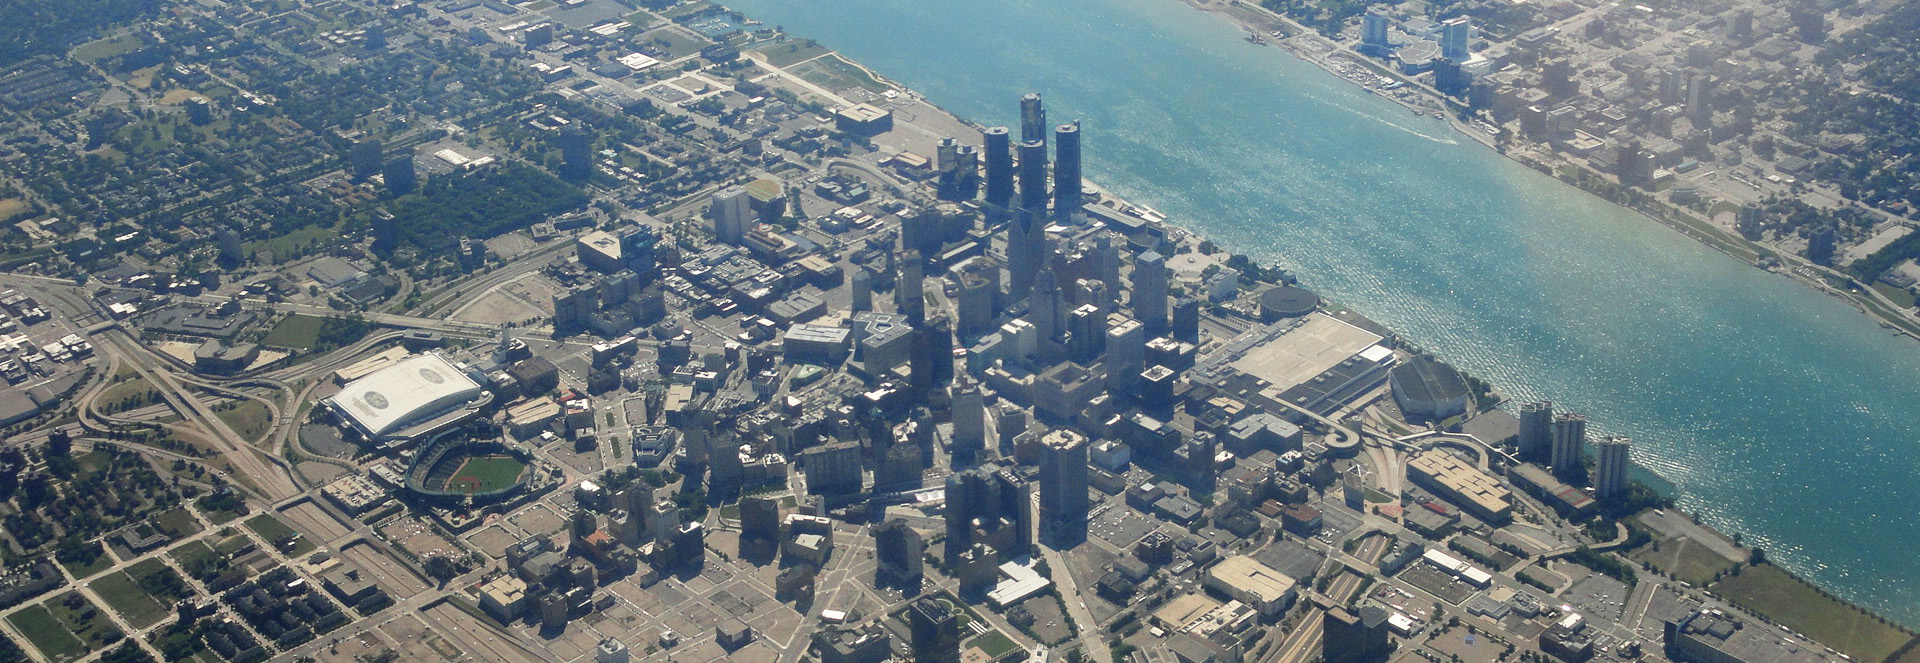 aerial_view_of_downtown_detroit_BANNER.jpg